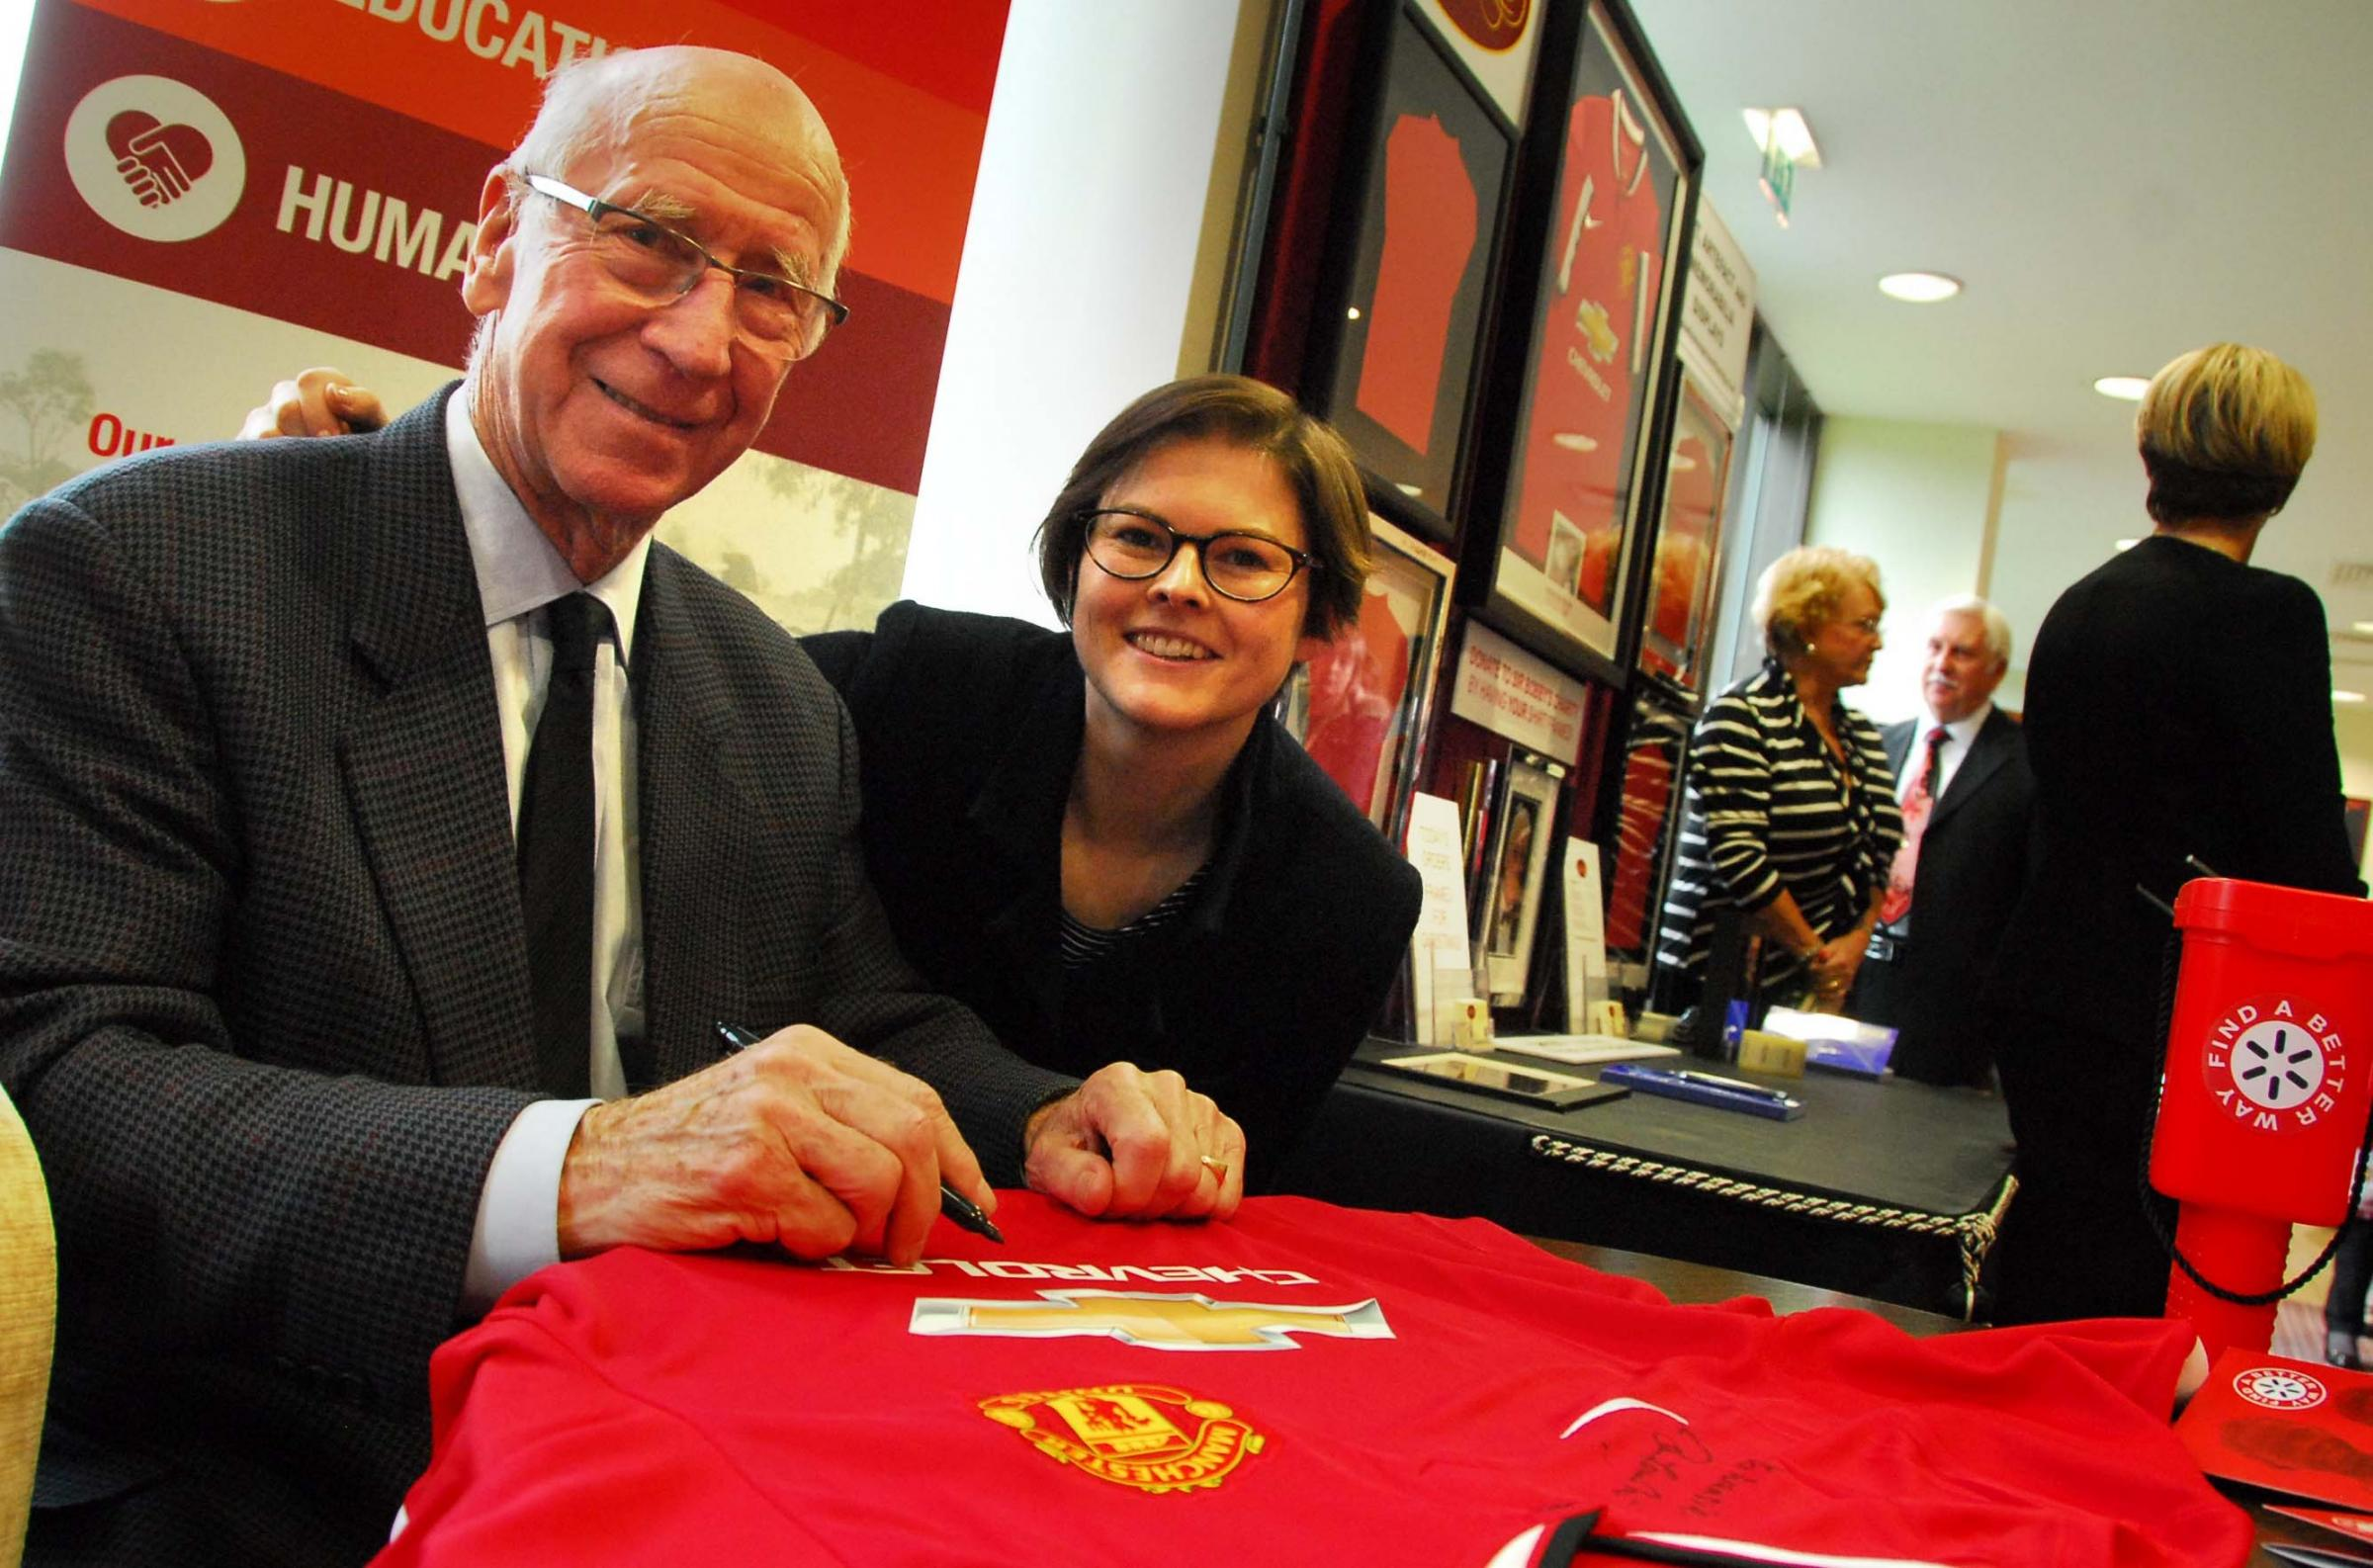 The Sir Bobby Charlton signed shirt event at Booths Park raised £10,000 for charity